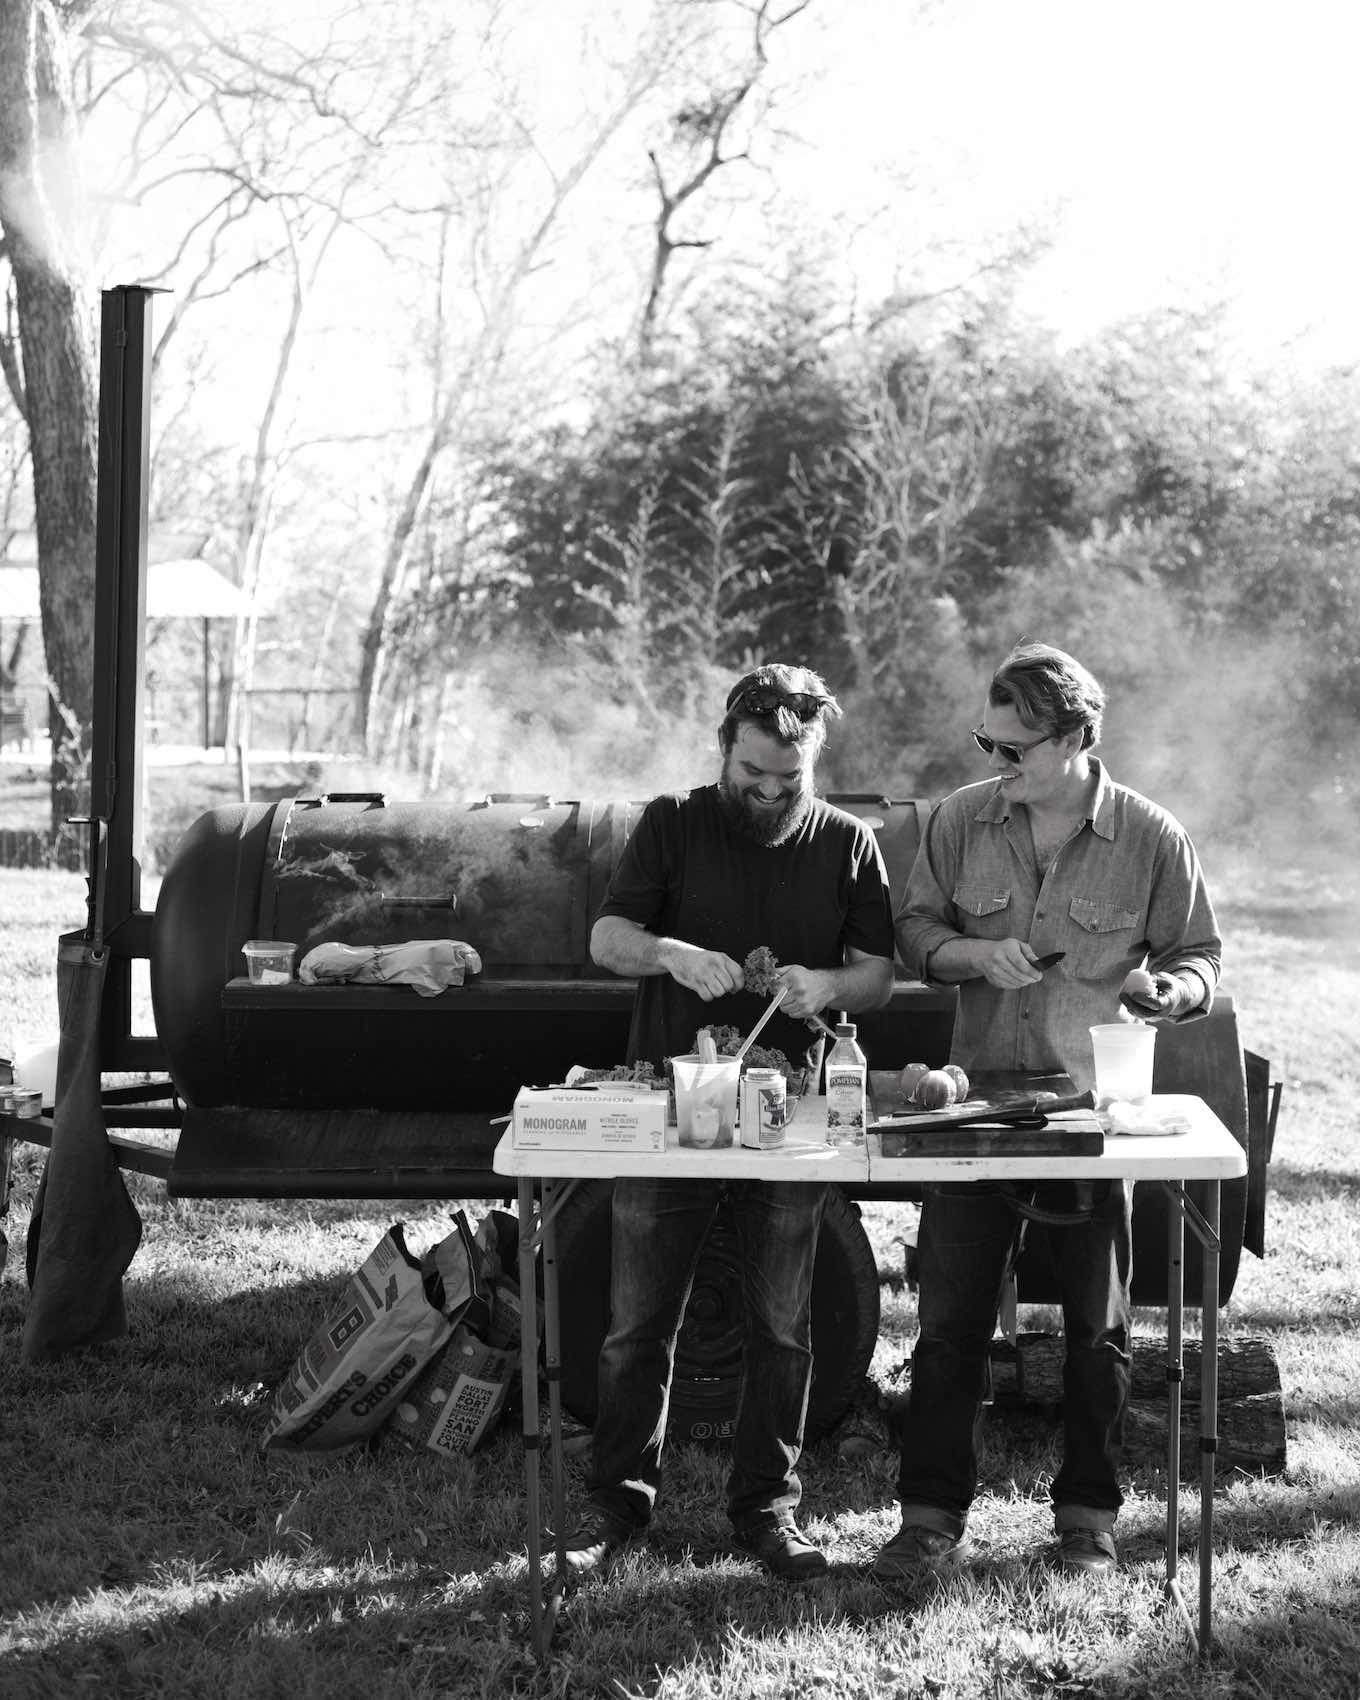 Jody Horton Photography - Chefs prepping ingredients in front of outdoor smoker, shot in B&W.